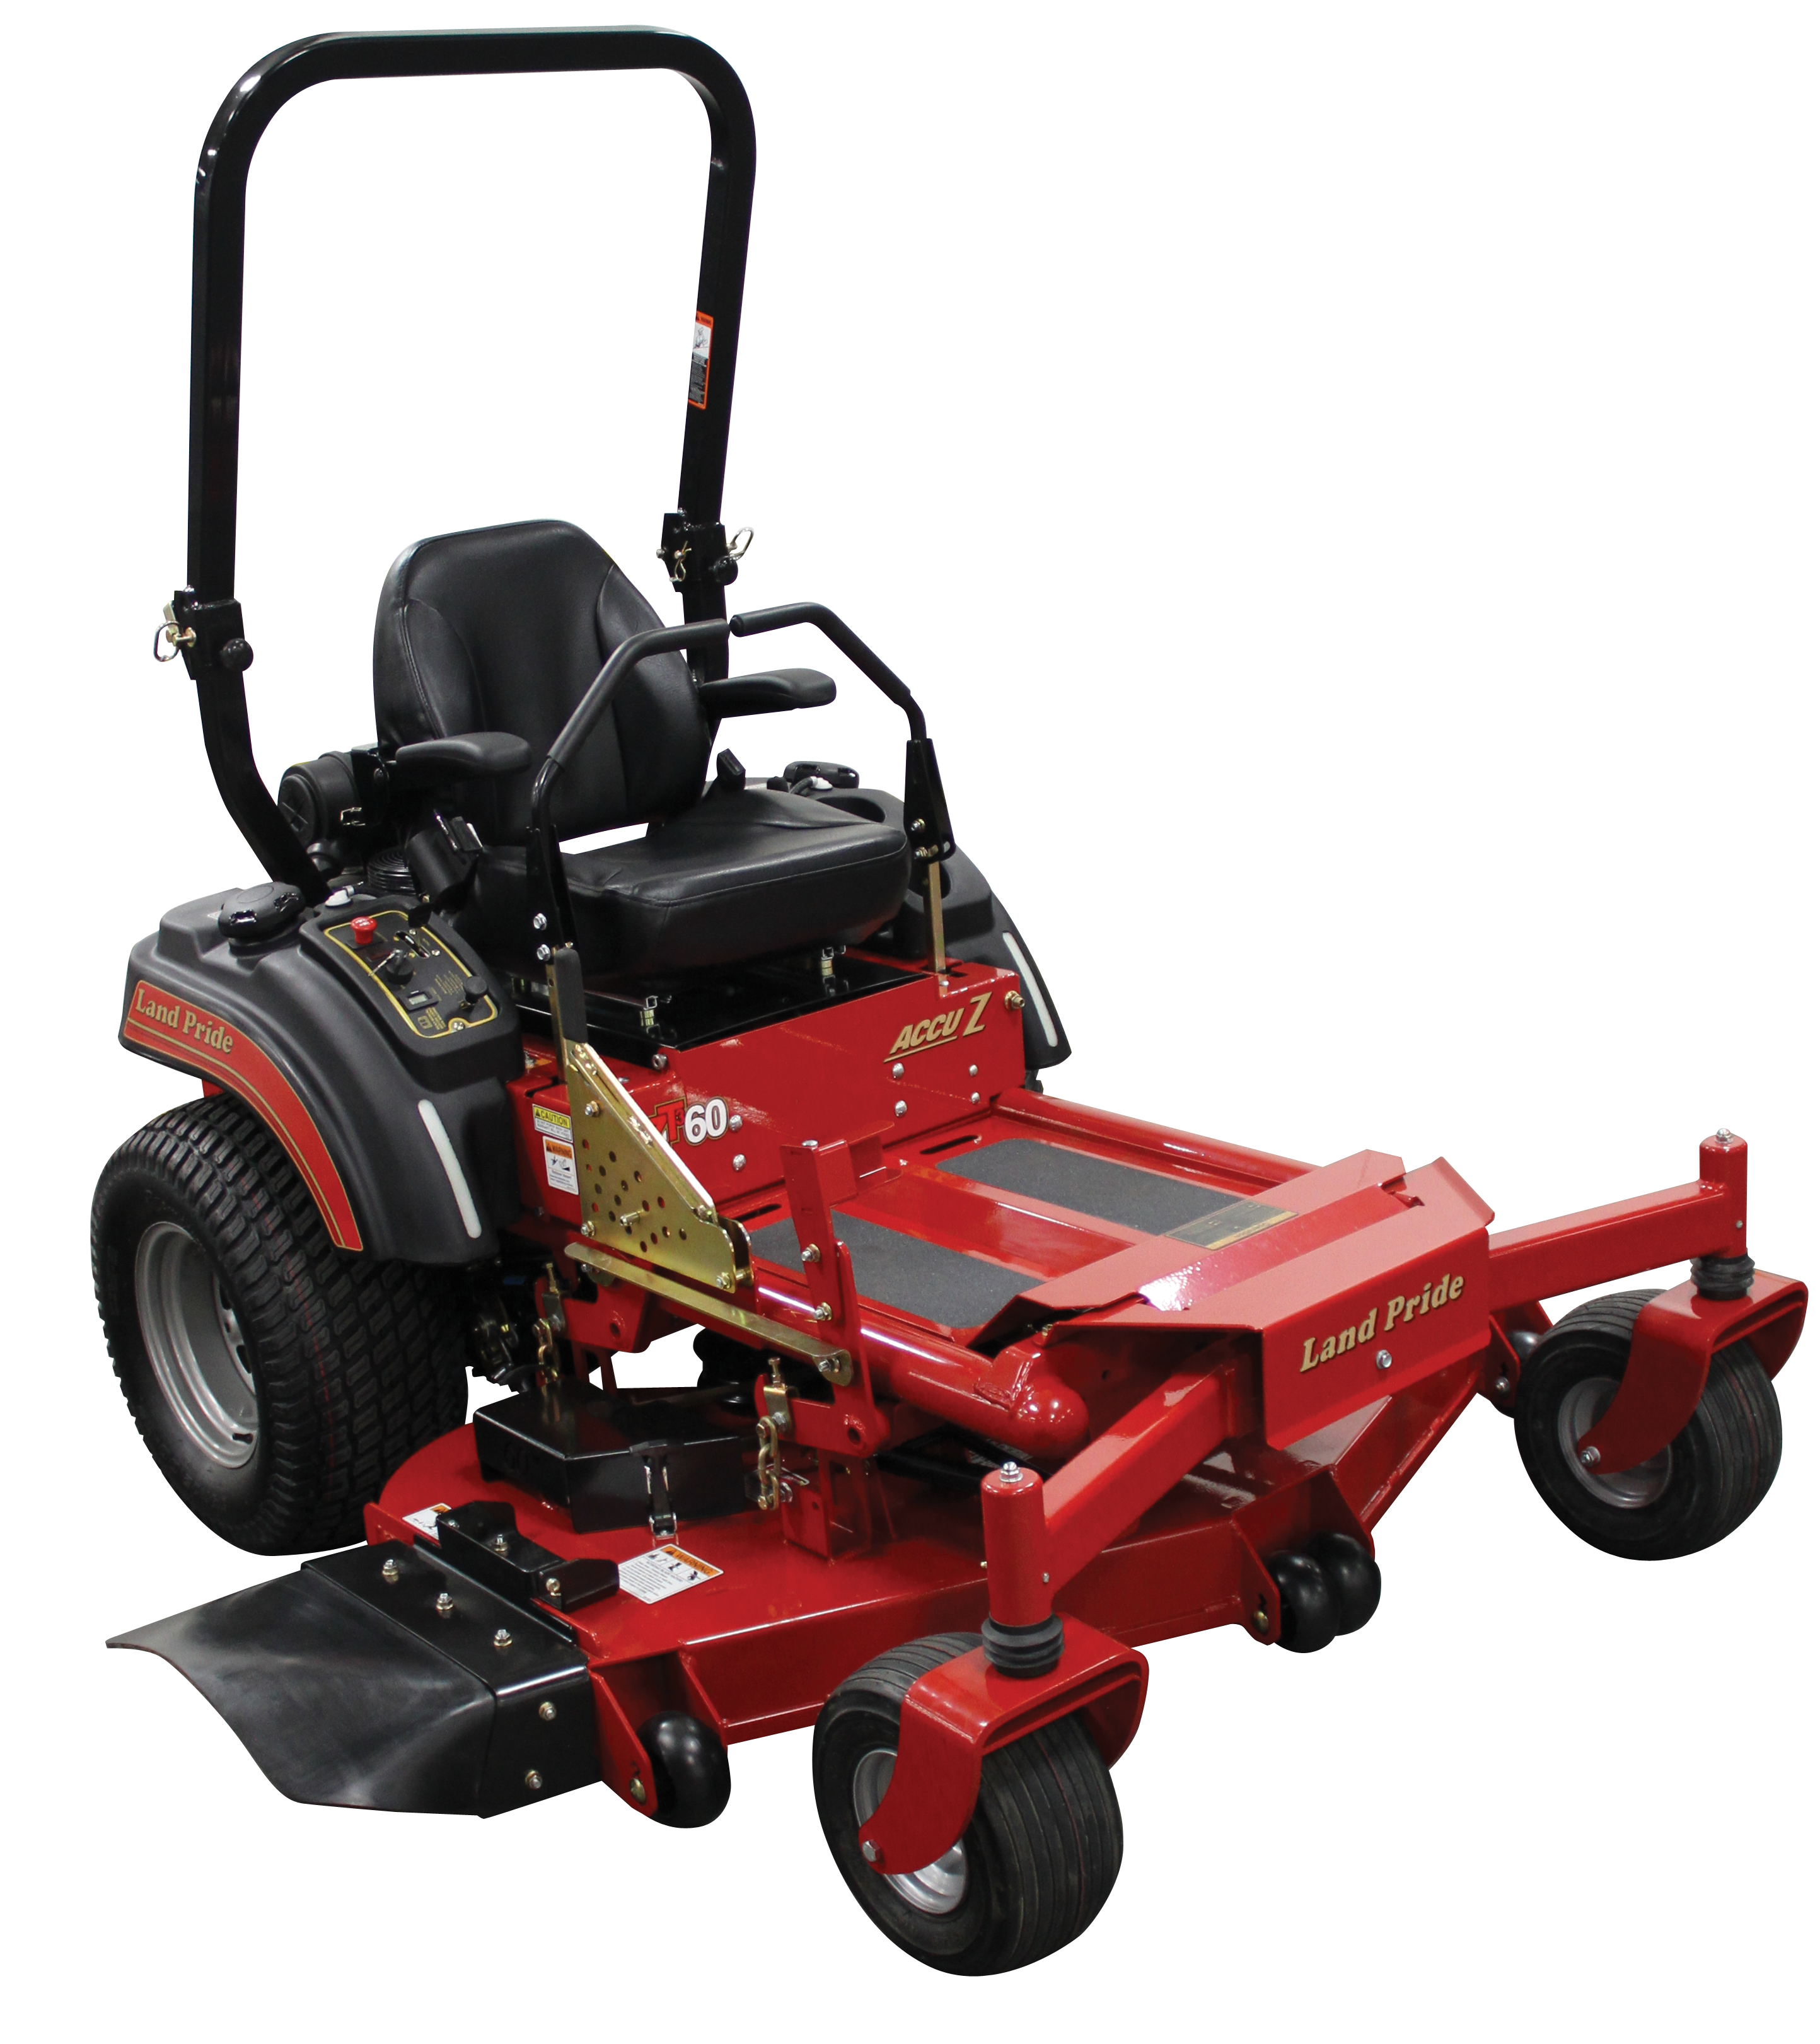 Home ztcover land landpride. Mowing clipart small engine